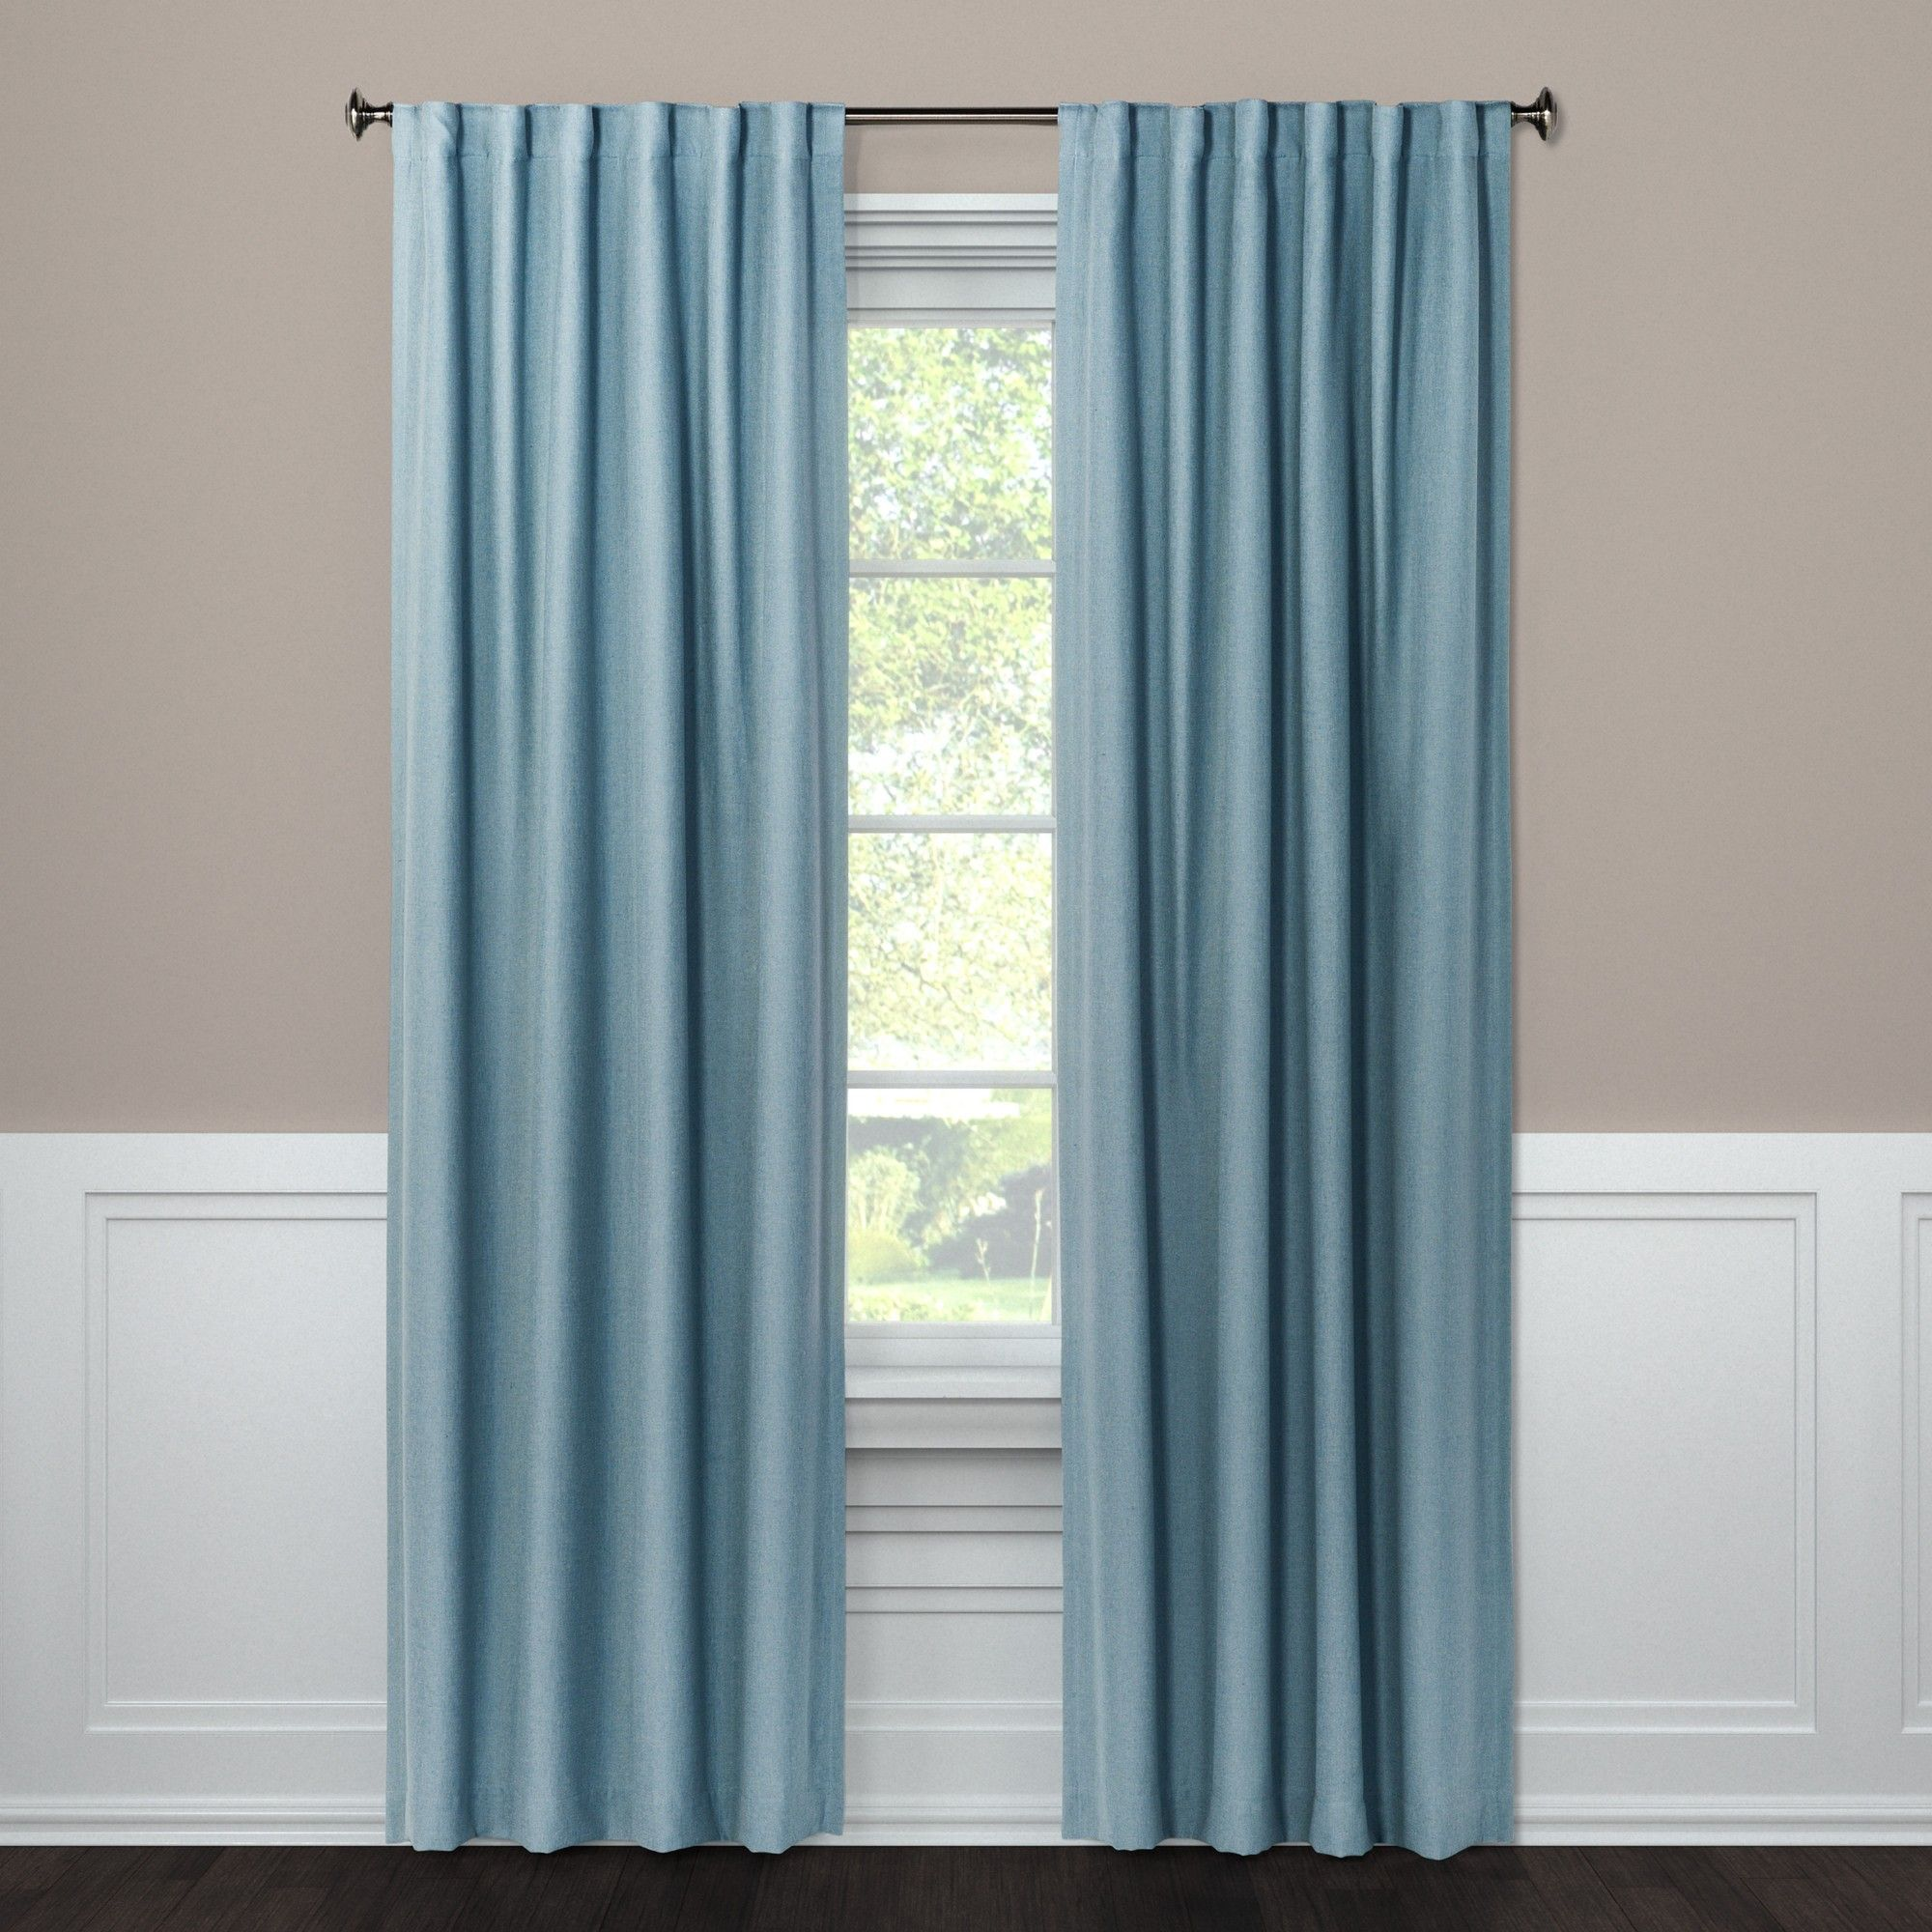 108 Blackout Curtain Panel Aruba Blue Threshold Panel